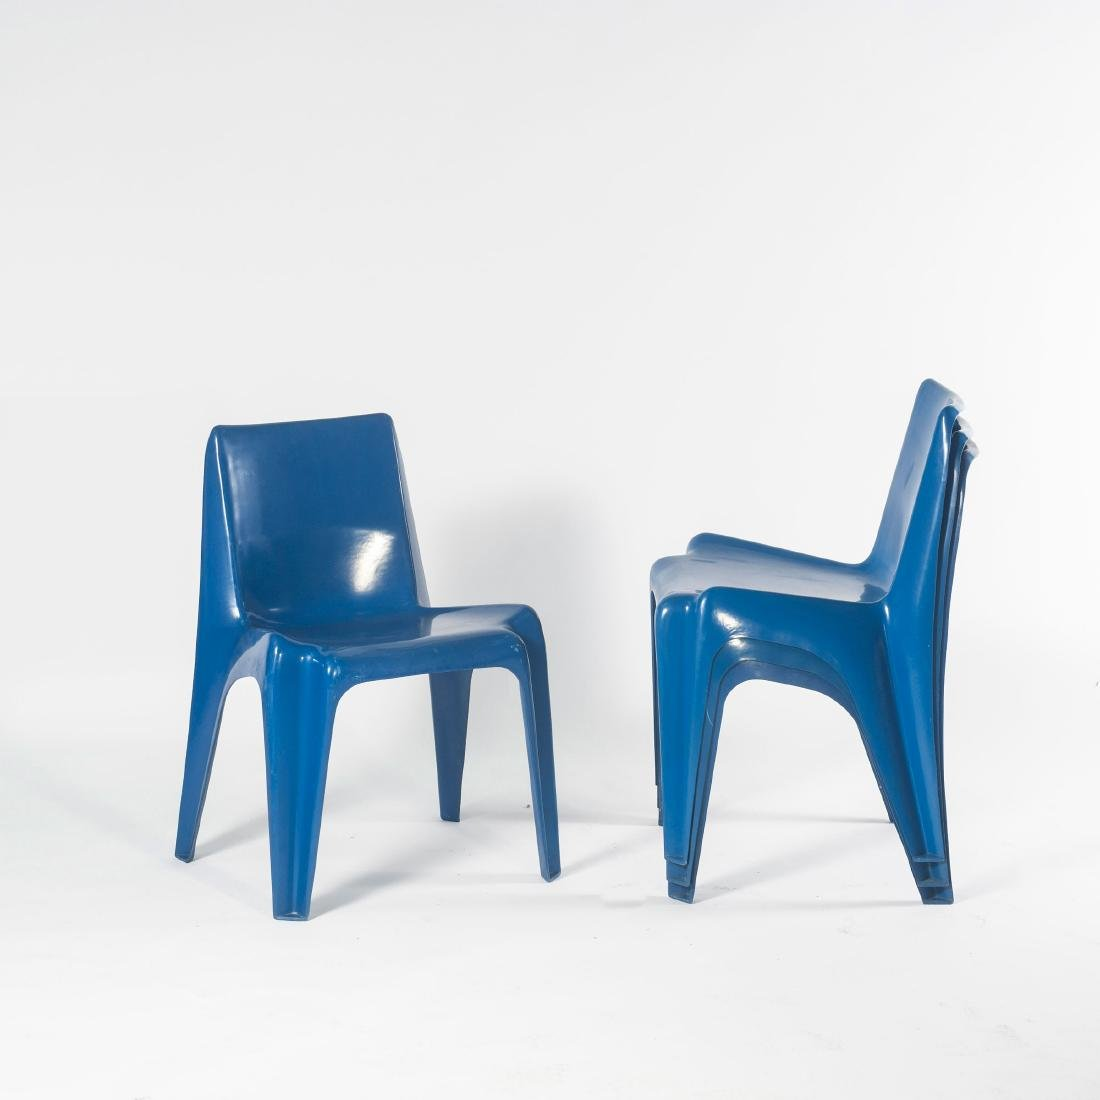 Four 'BA 1171' stacking chairs, 1964